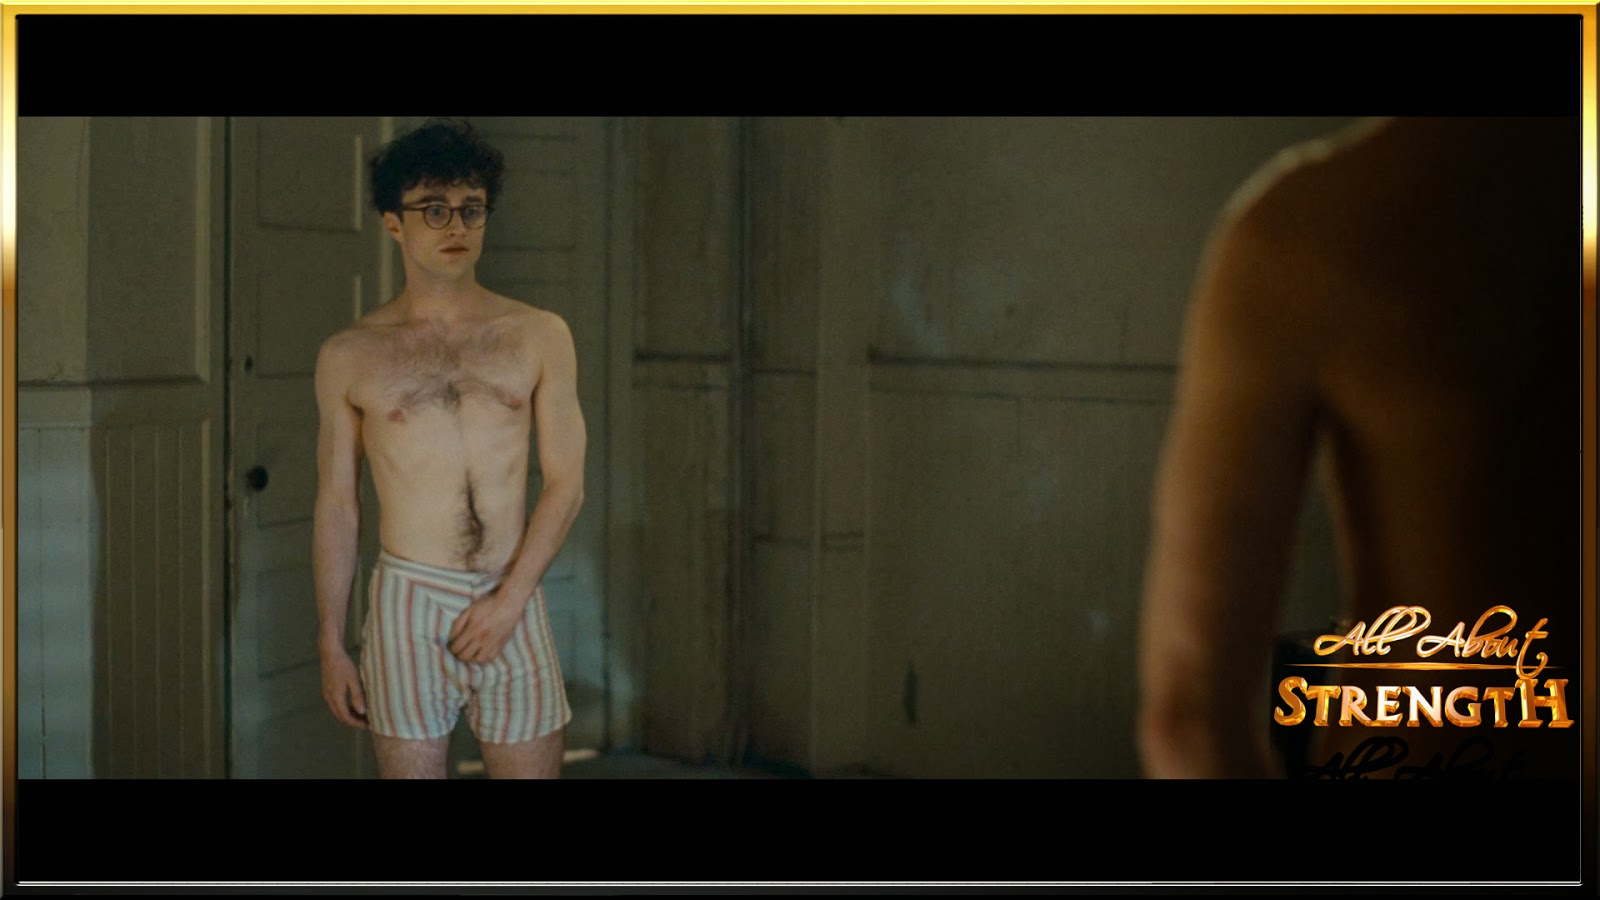 Words... Shirtless daniel radcliffe naked simply